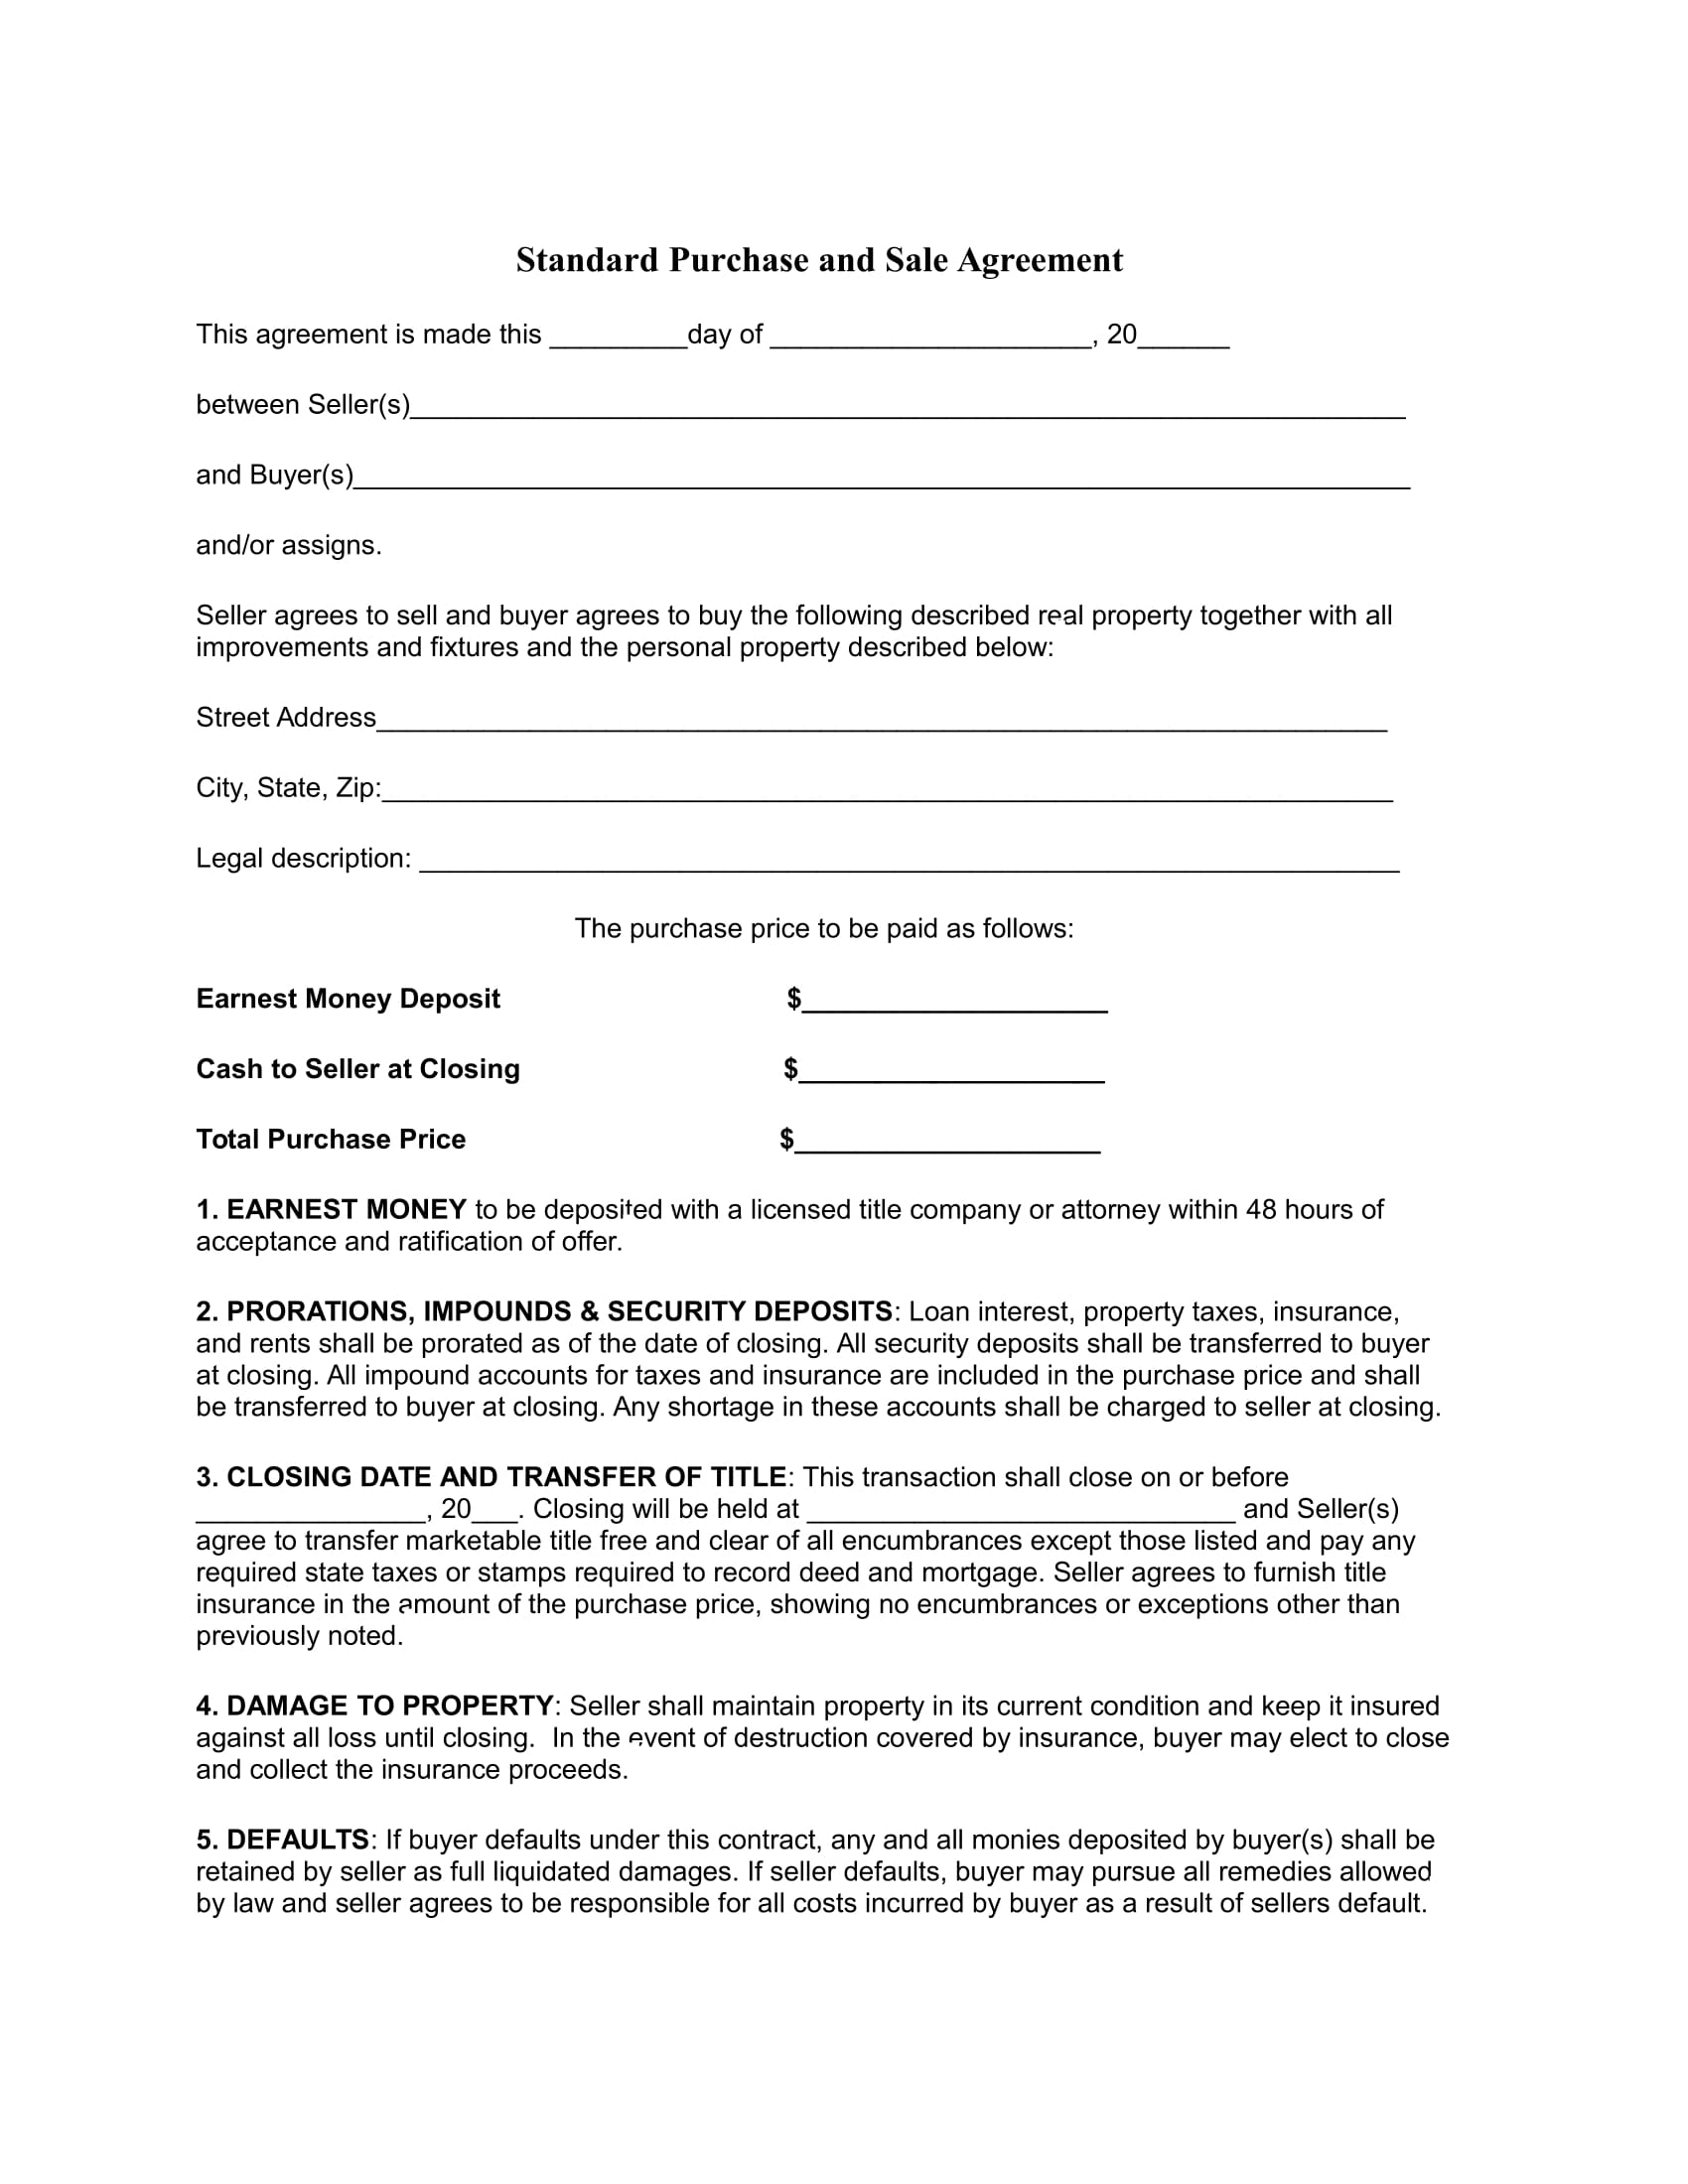 standard purchase and sale agreement 1